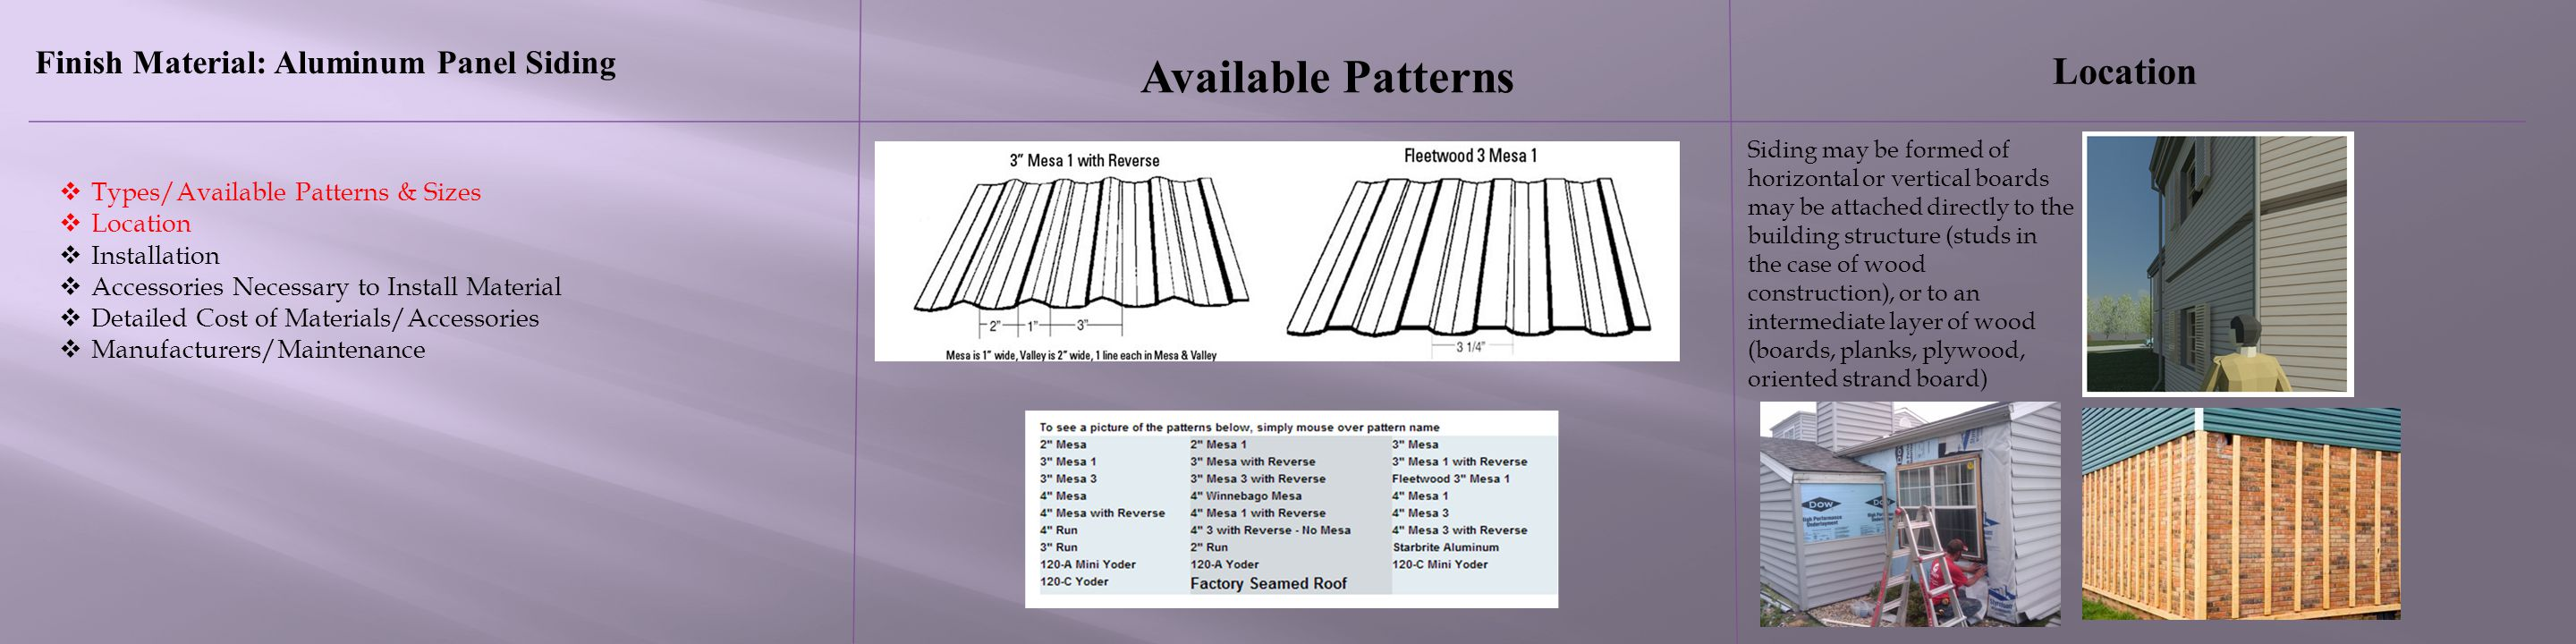 Available Patterns Location Finish Material: Aluminum Panel Siding